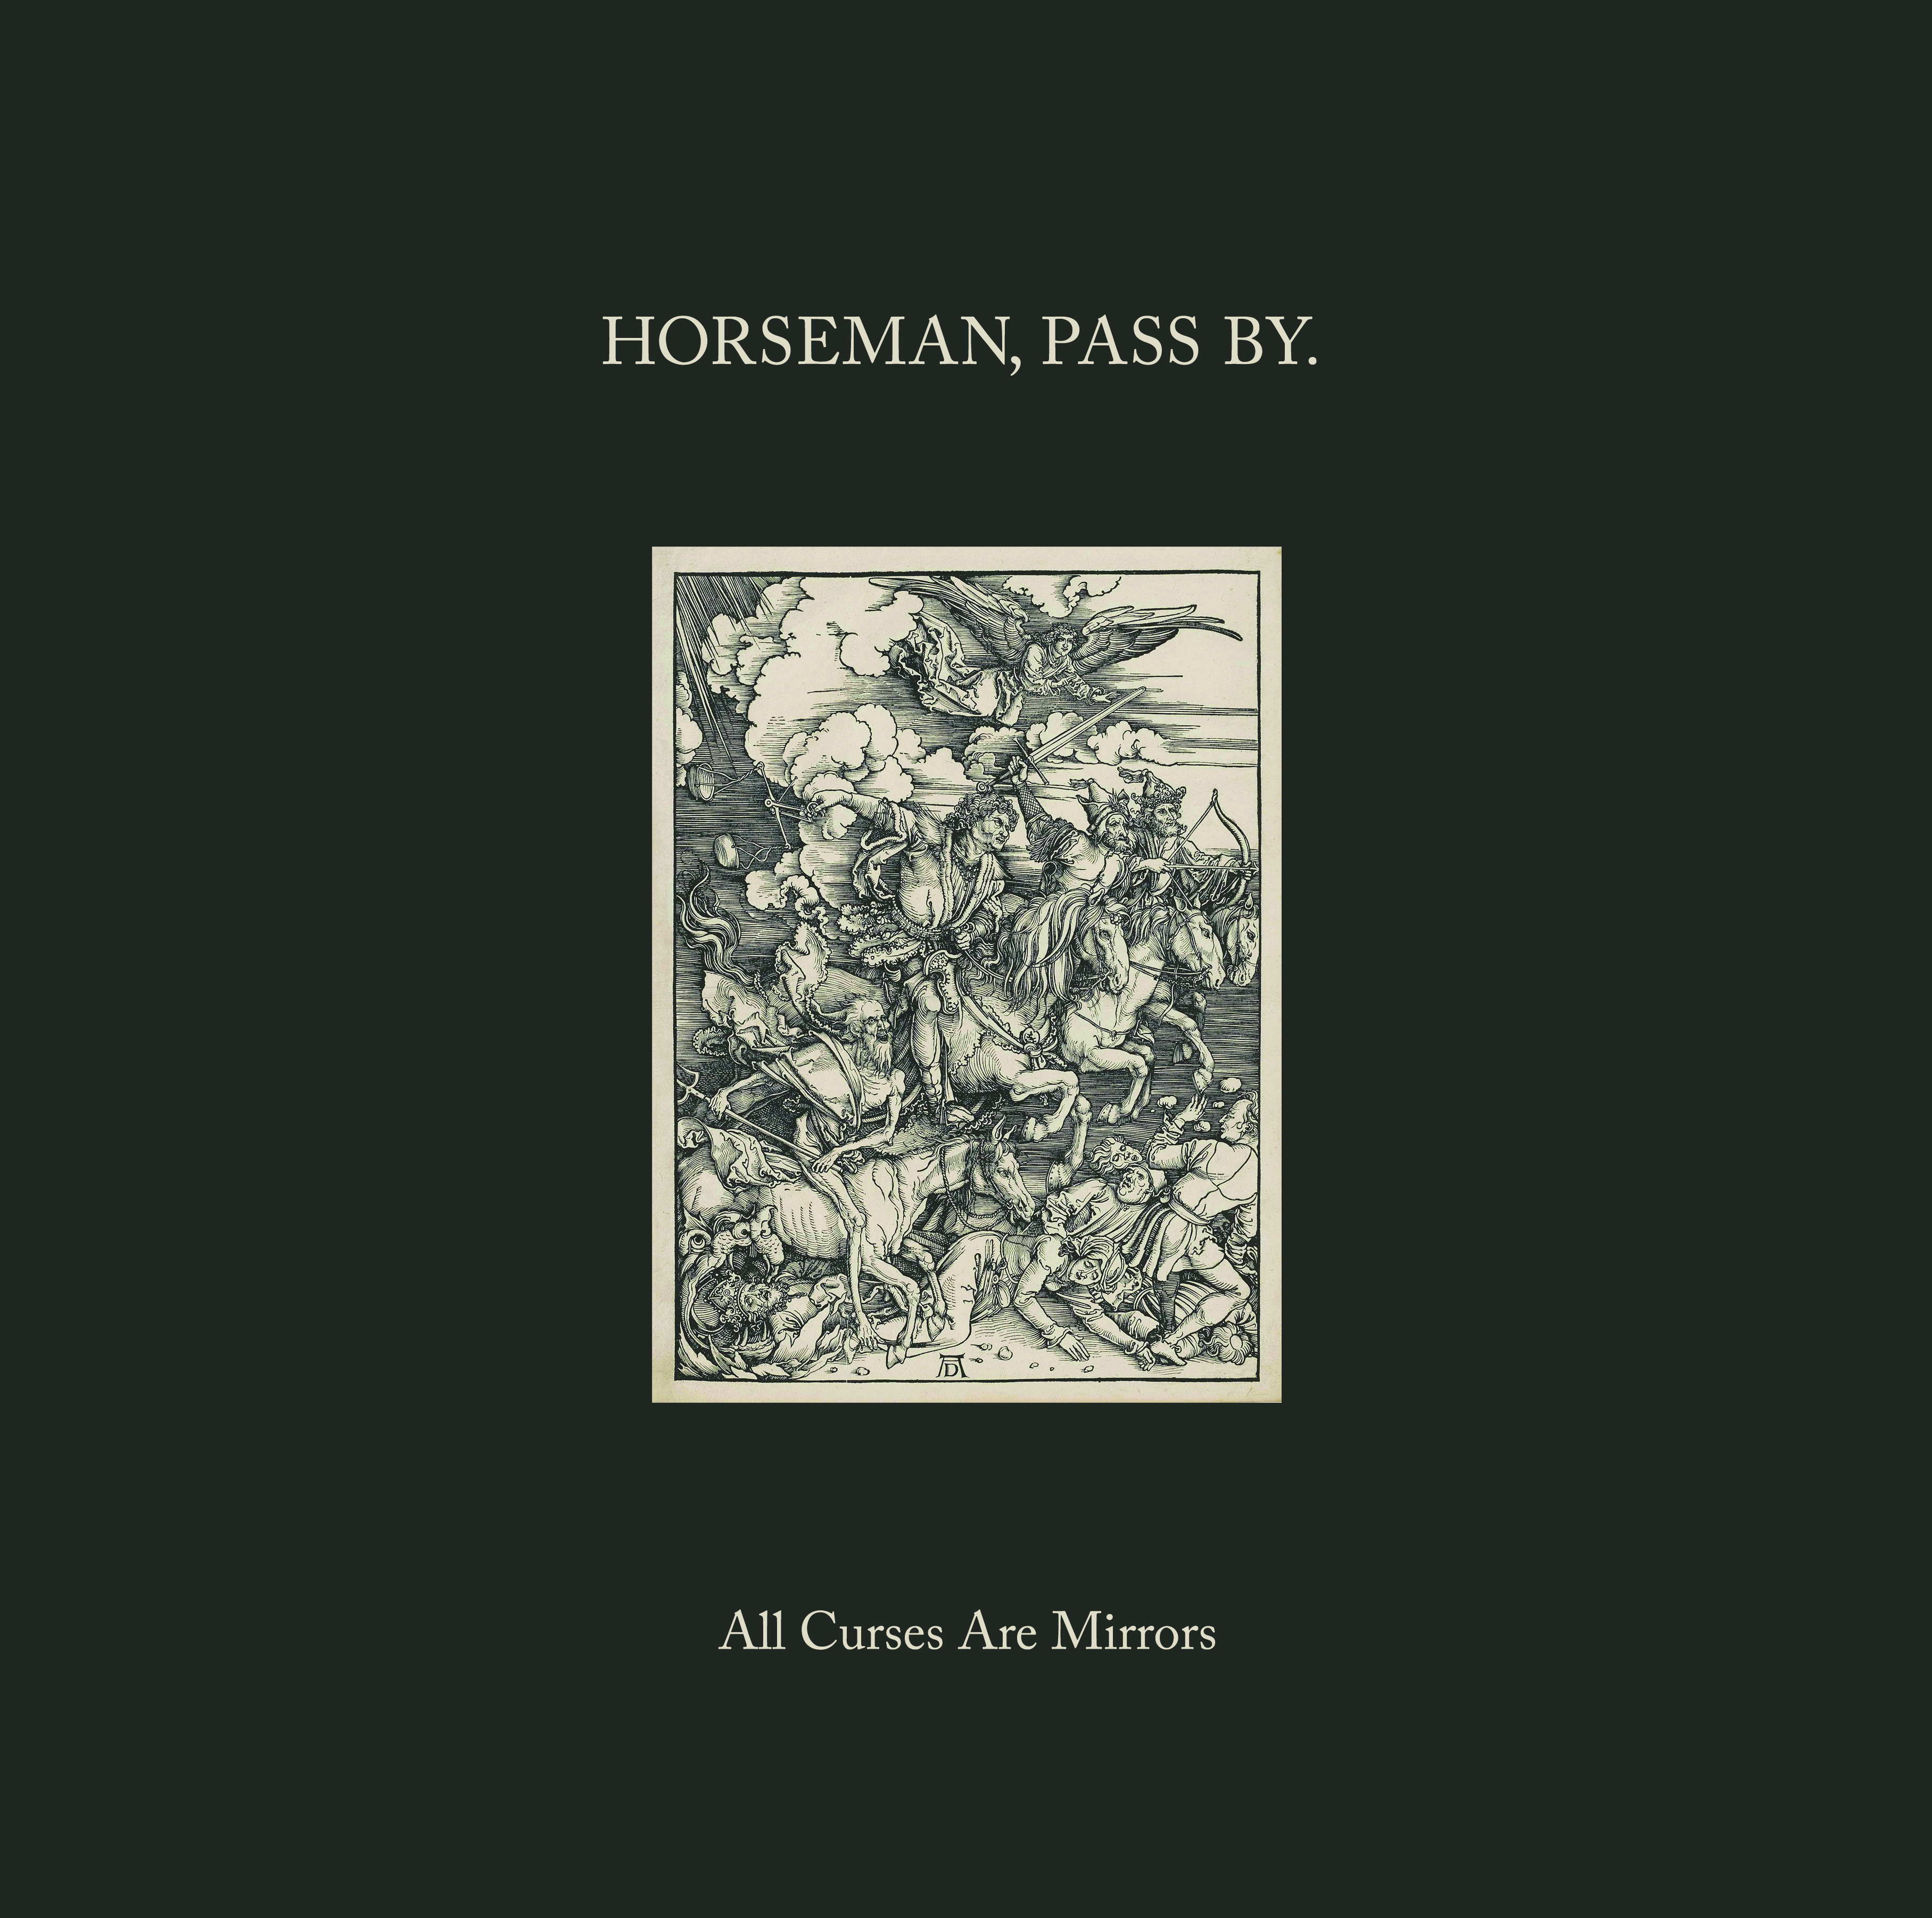 Horseman, Pass By. - ALL CURSES ARE MIRRORS